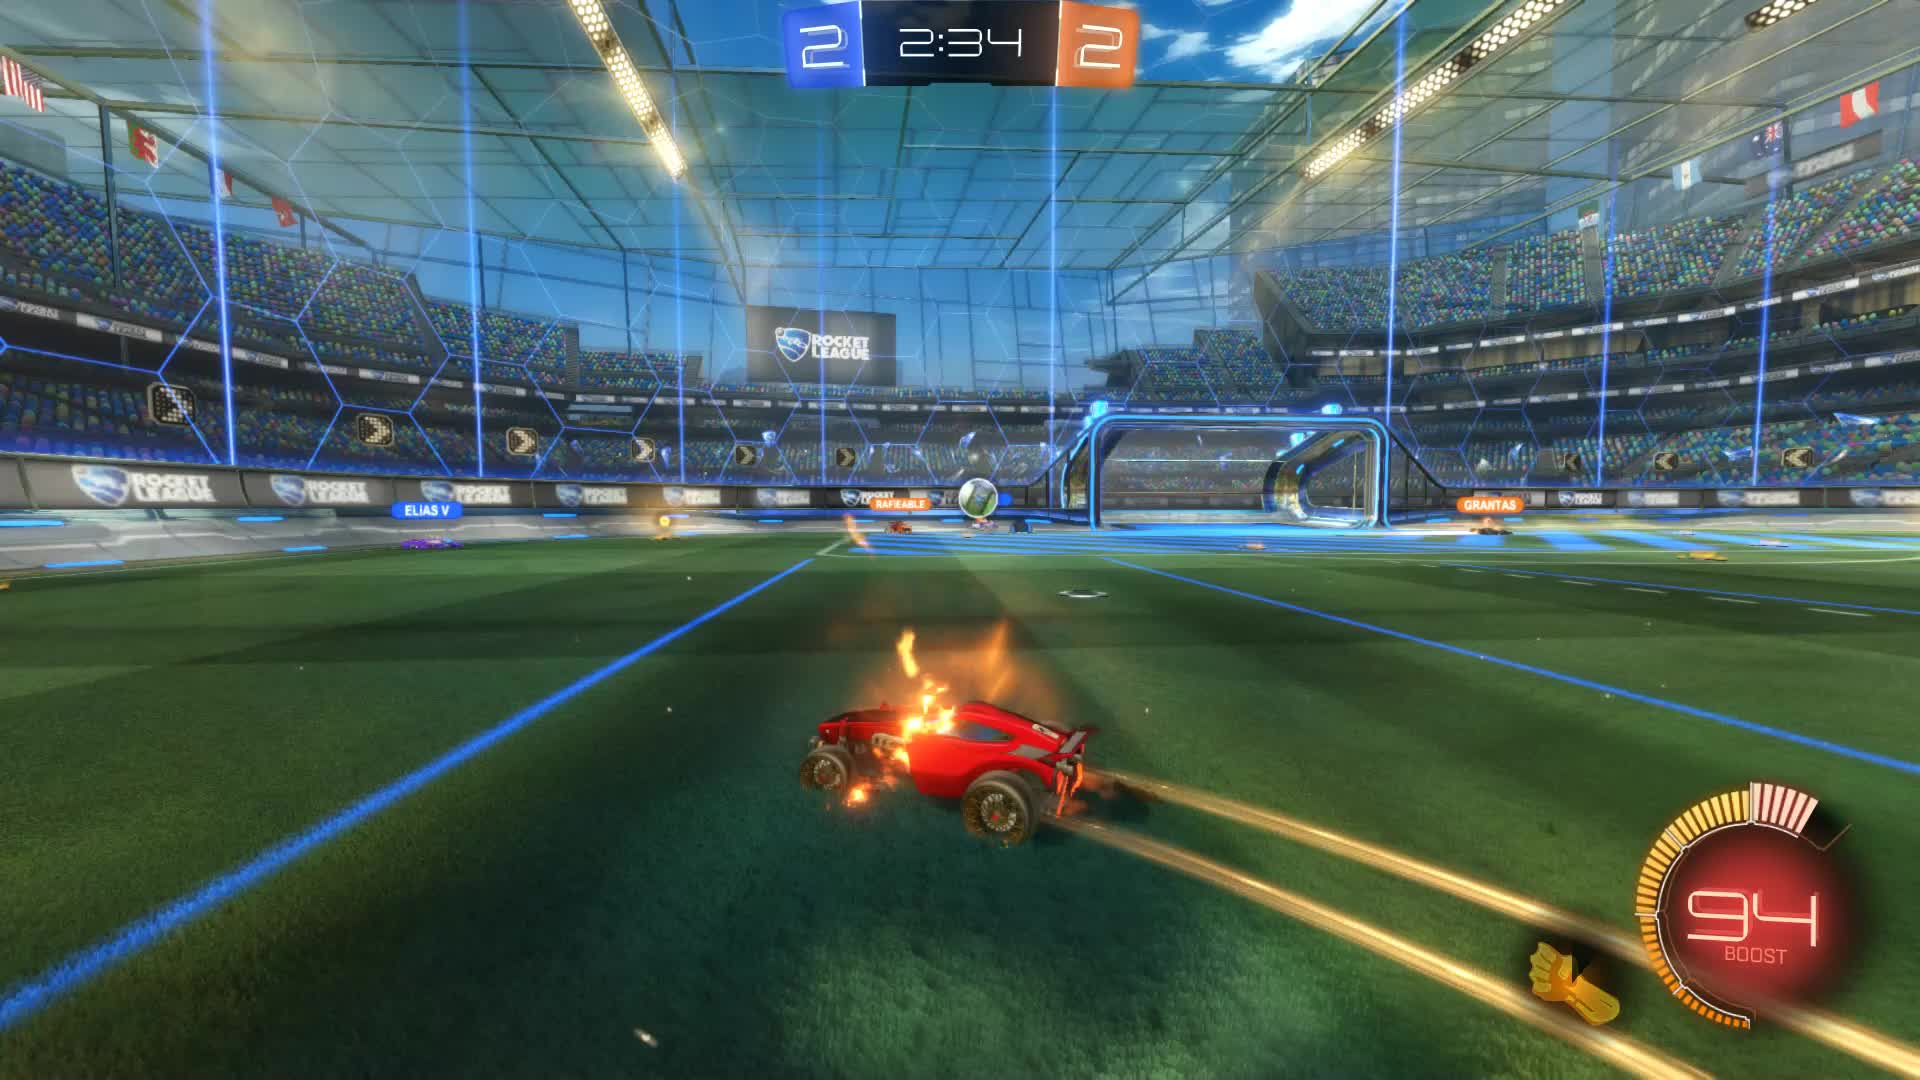 Gif Your Game, GifYourGame, Goal, JAG, Rocket League, RocketLeague, Goal 5: JAG GIFs